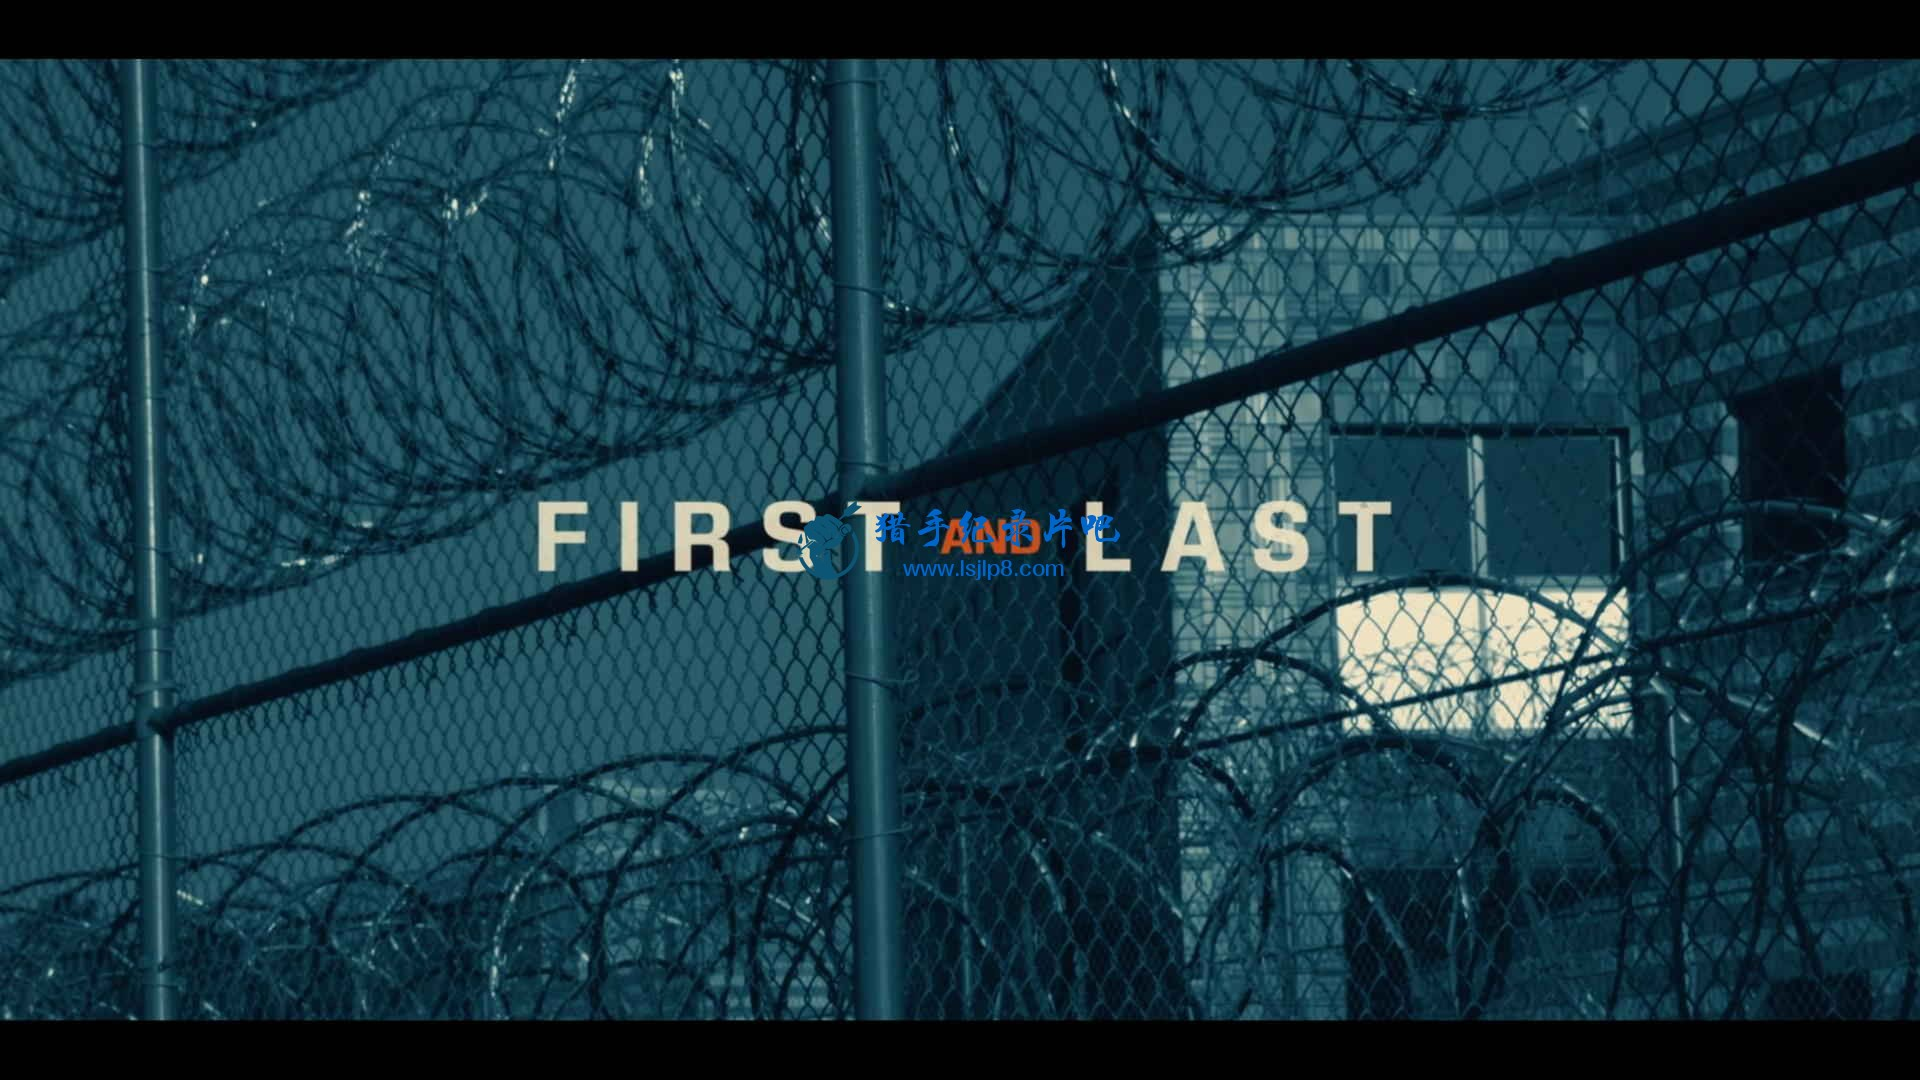 First.and.Last.S01E01.Take.Your.Charge.1080p.NF.WEB-DL.DDP5.1.x264-NTG.mkv_20200.jpg